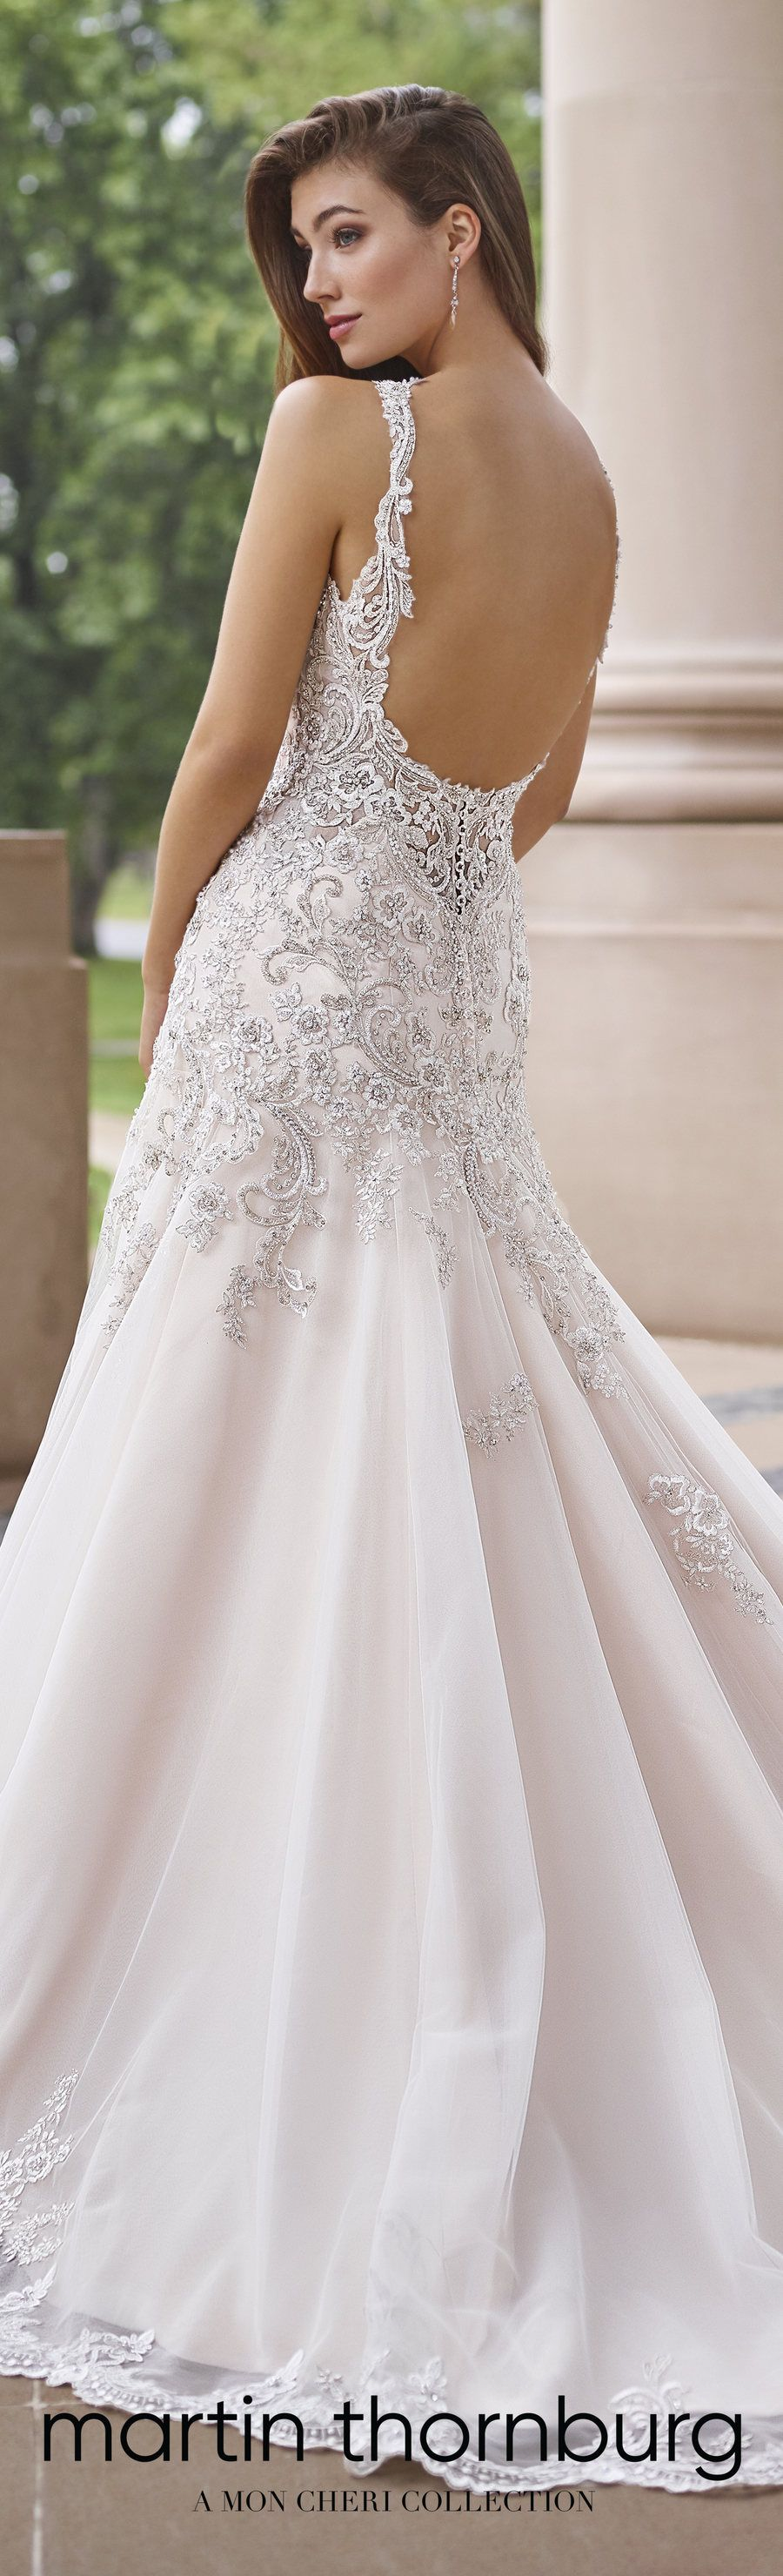 World Exclusive Wedding Dresses Spring 2018 By Martin